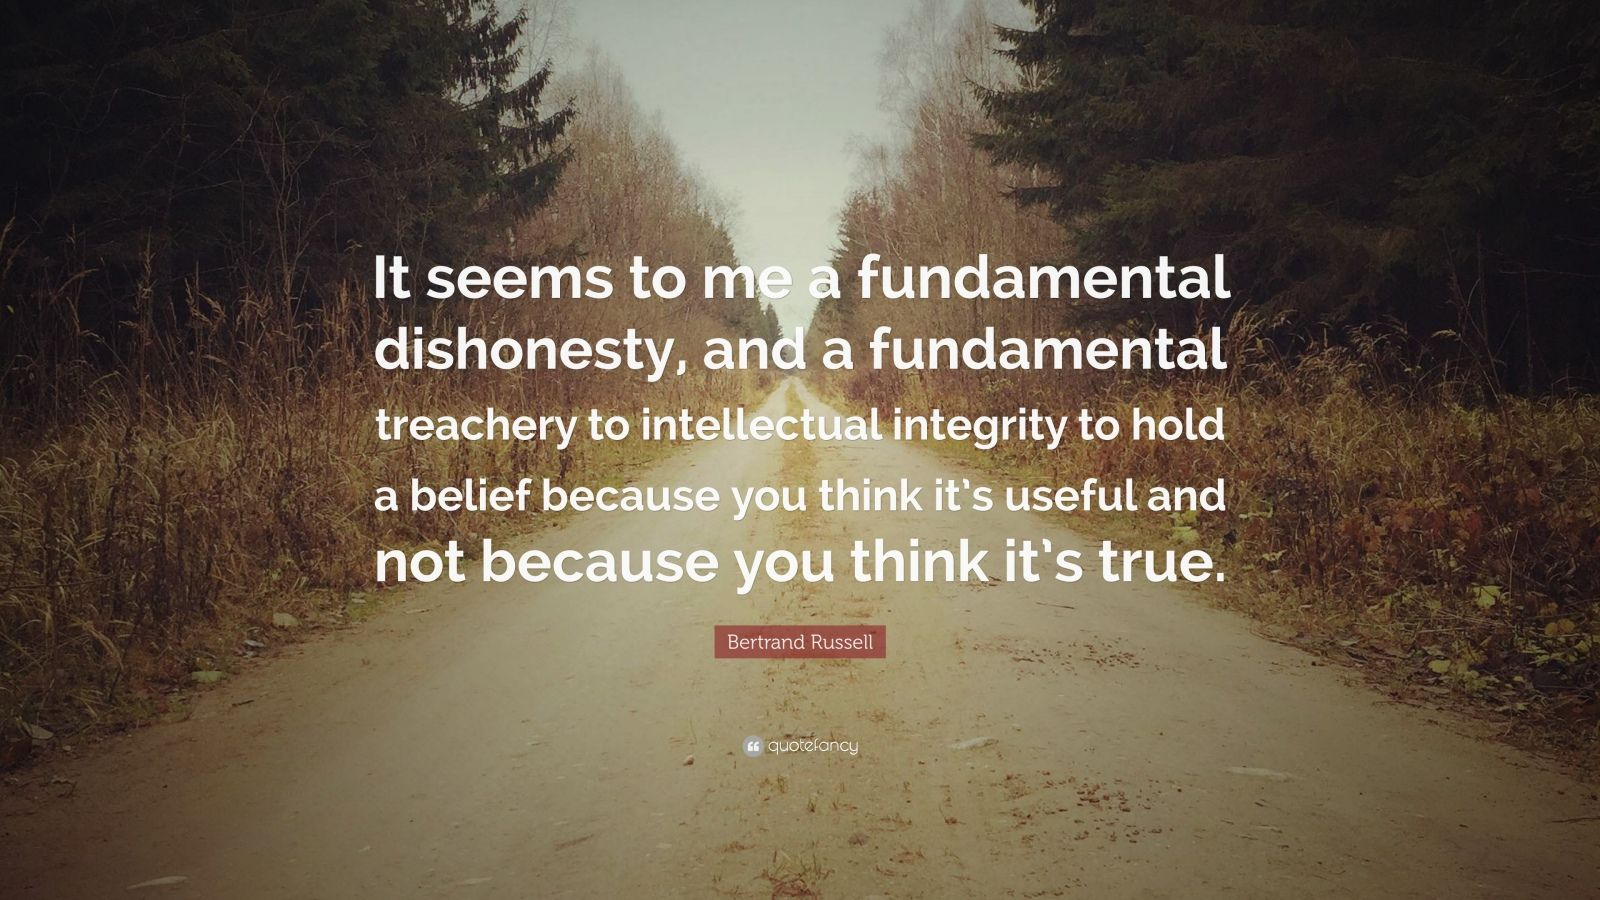 """Bertrand Russell Quote: """"It seems to me a fundamental dishonesty, and a fundamental treachery to intellectual integrity to hold a belief because you think it's useful and not because you think it's true."""""""